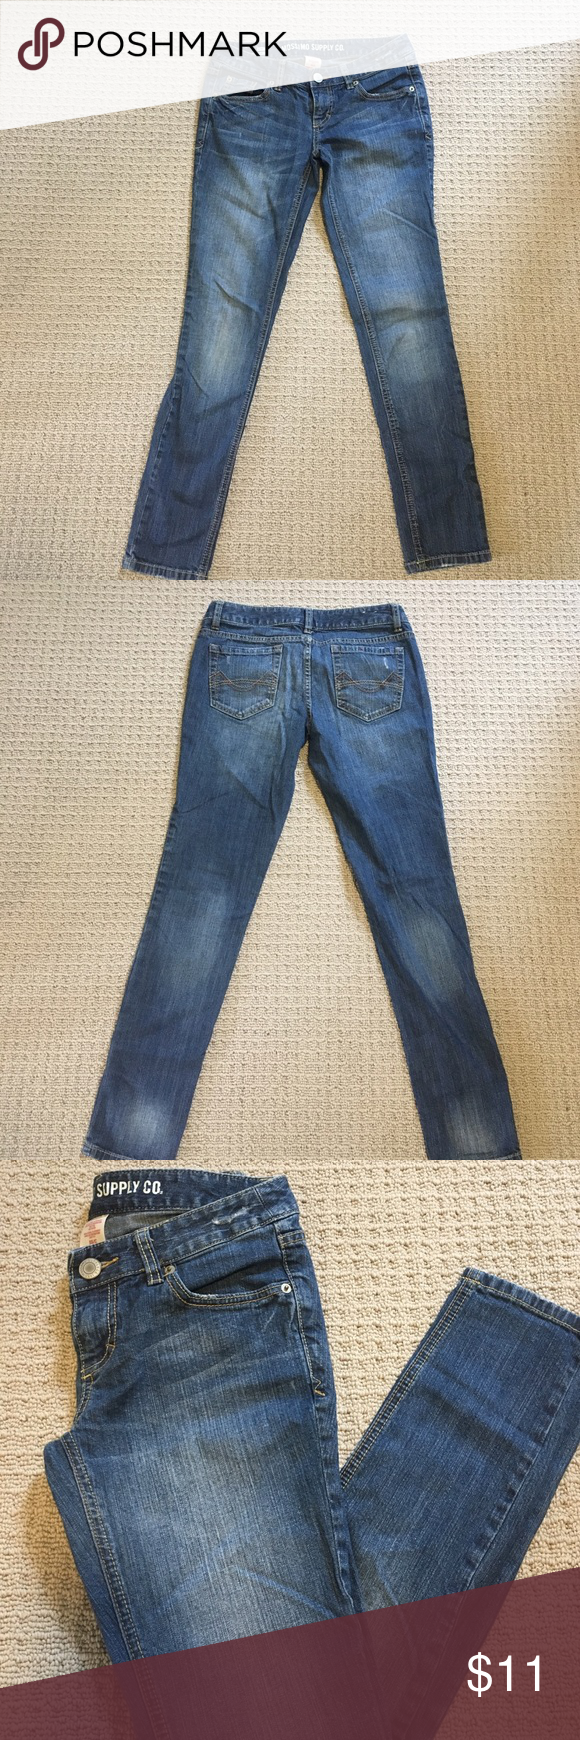 Mossimo Skinny Denim Jeans Skinny denim jeans! Excellent condition, worn a couple times, don't fit anymore! Mossimo Supply Co. Jeans Skinny